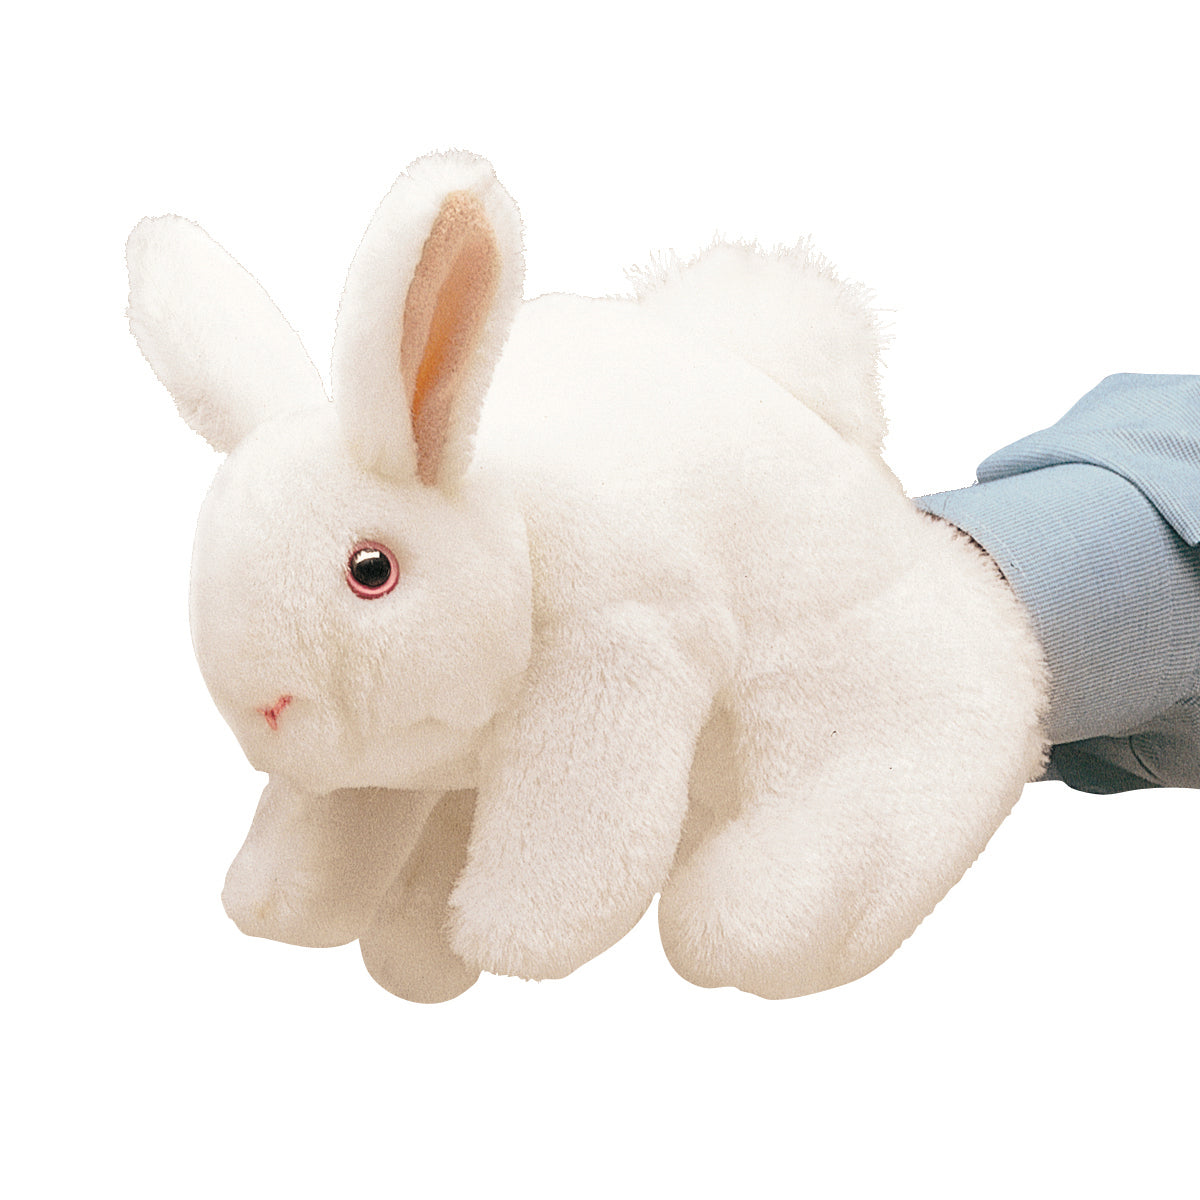 White Rabbit Hand Puppet - Folkmanis